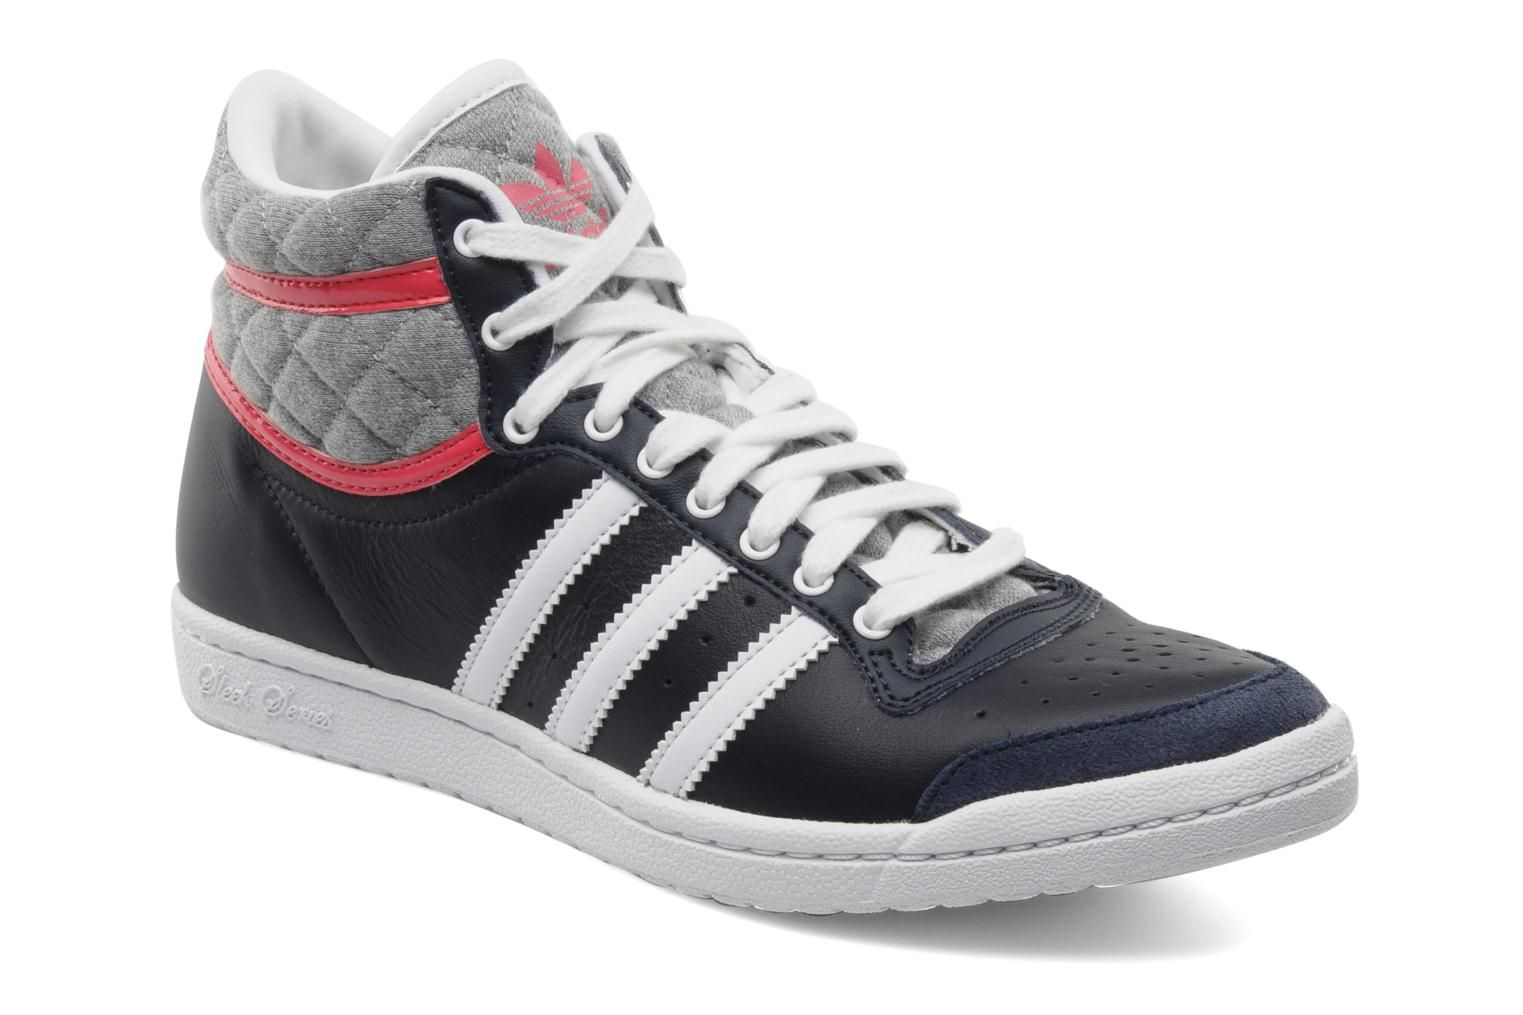 Adidas Originals Top ten hi sleek w large | Favorit Shos